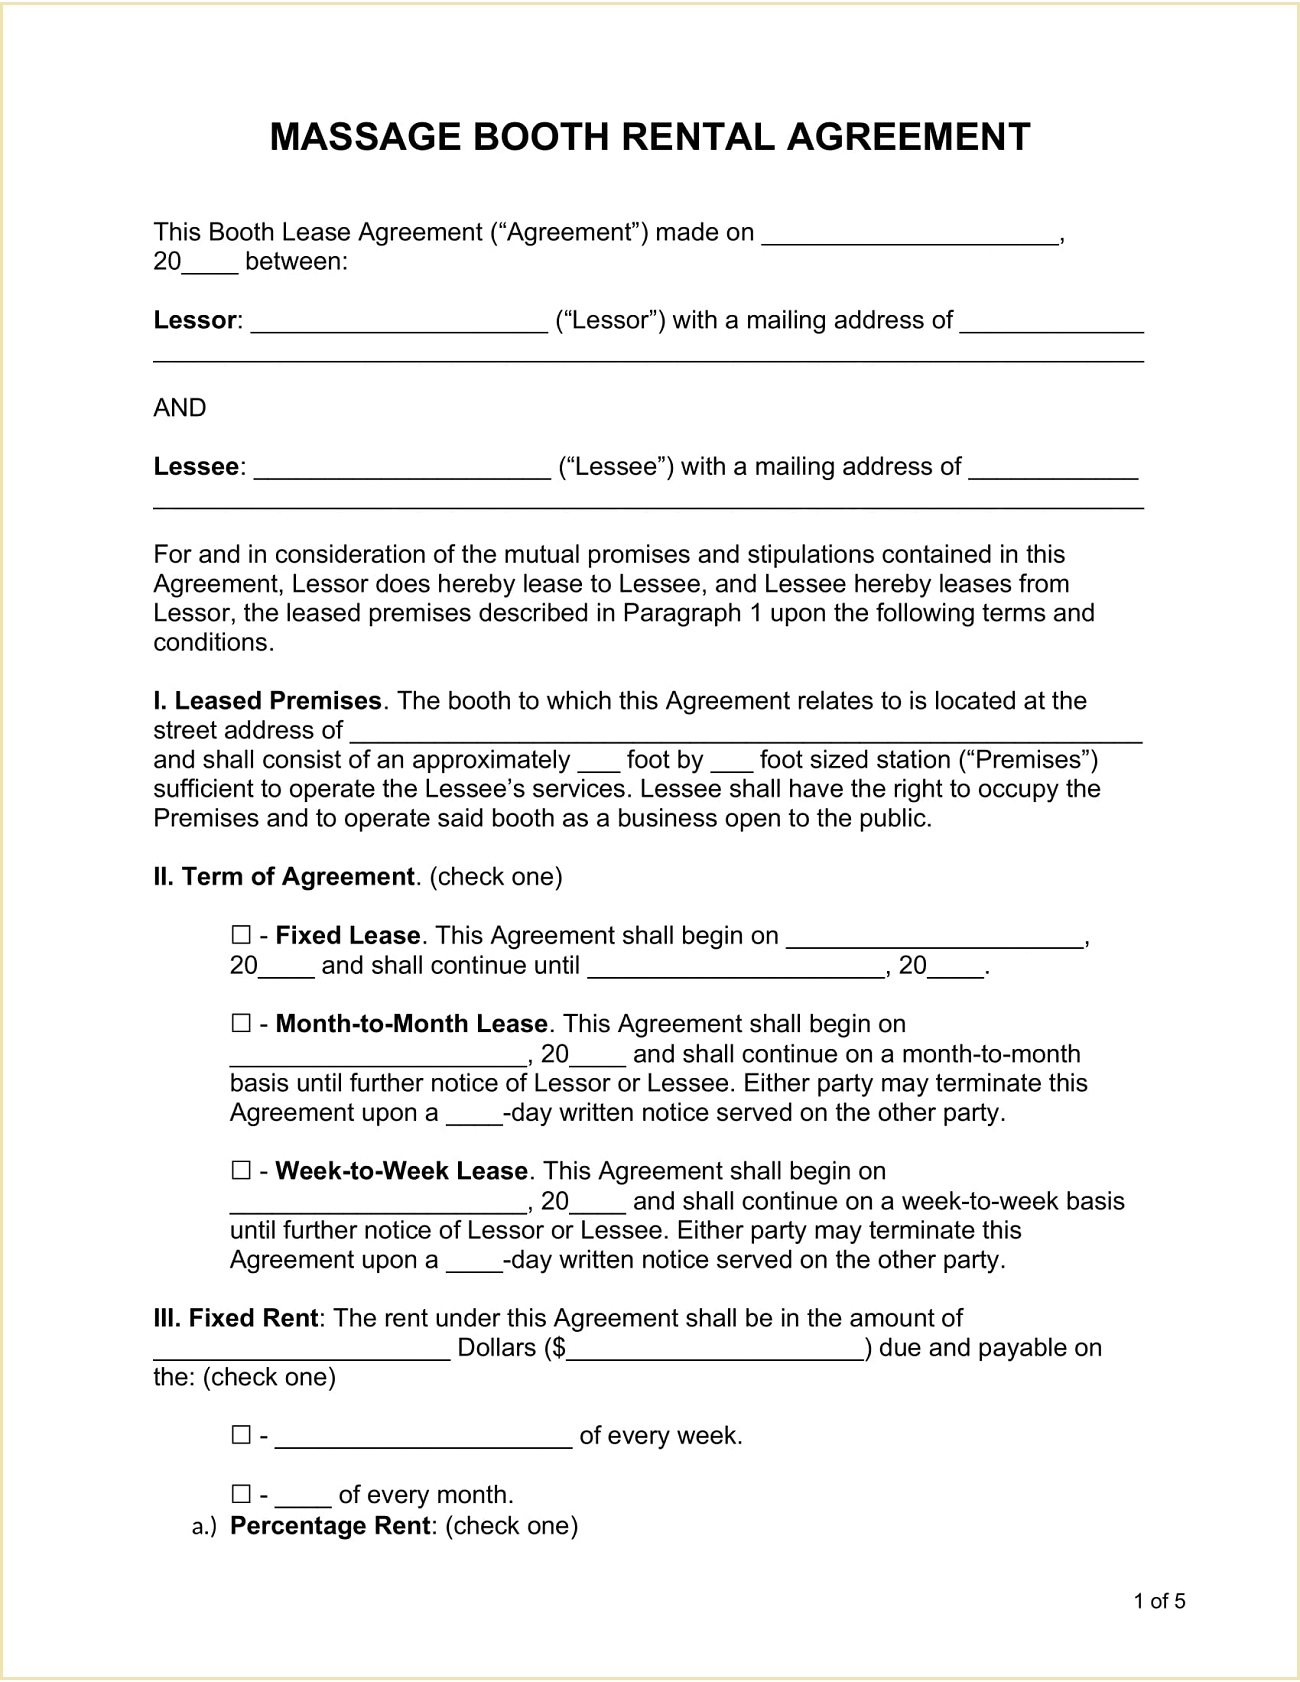 Massage Booth Rental Agreement Form Template Word